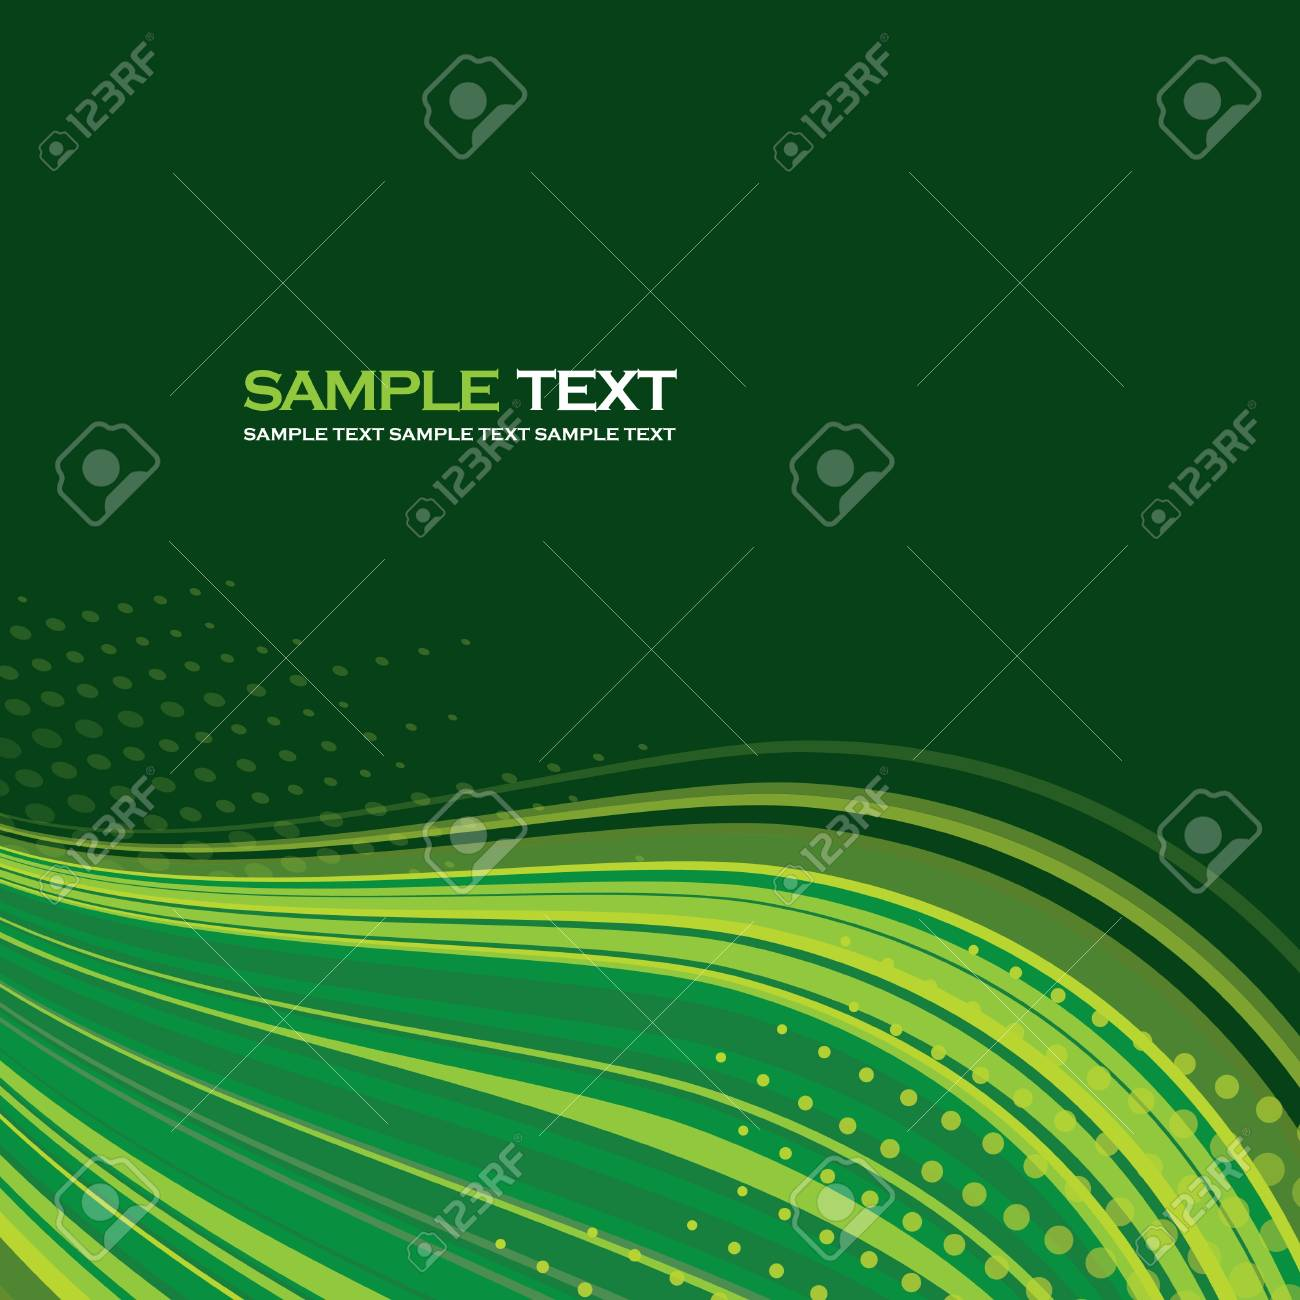 Background  Abstract Illustration Stock Vector - 14667177